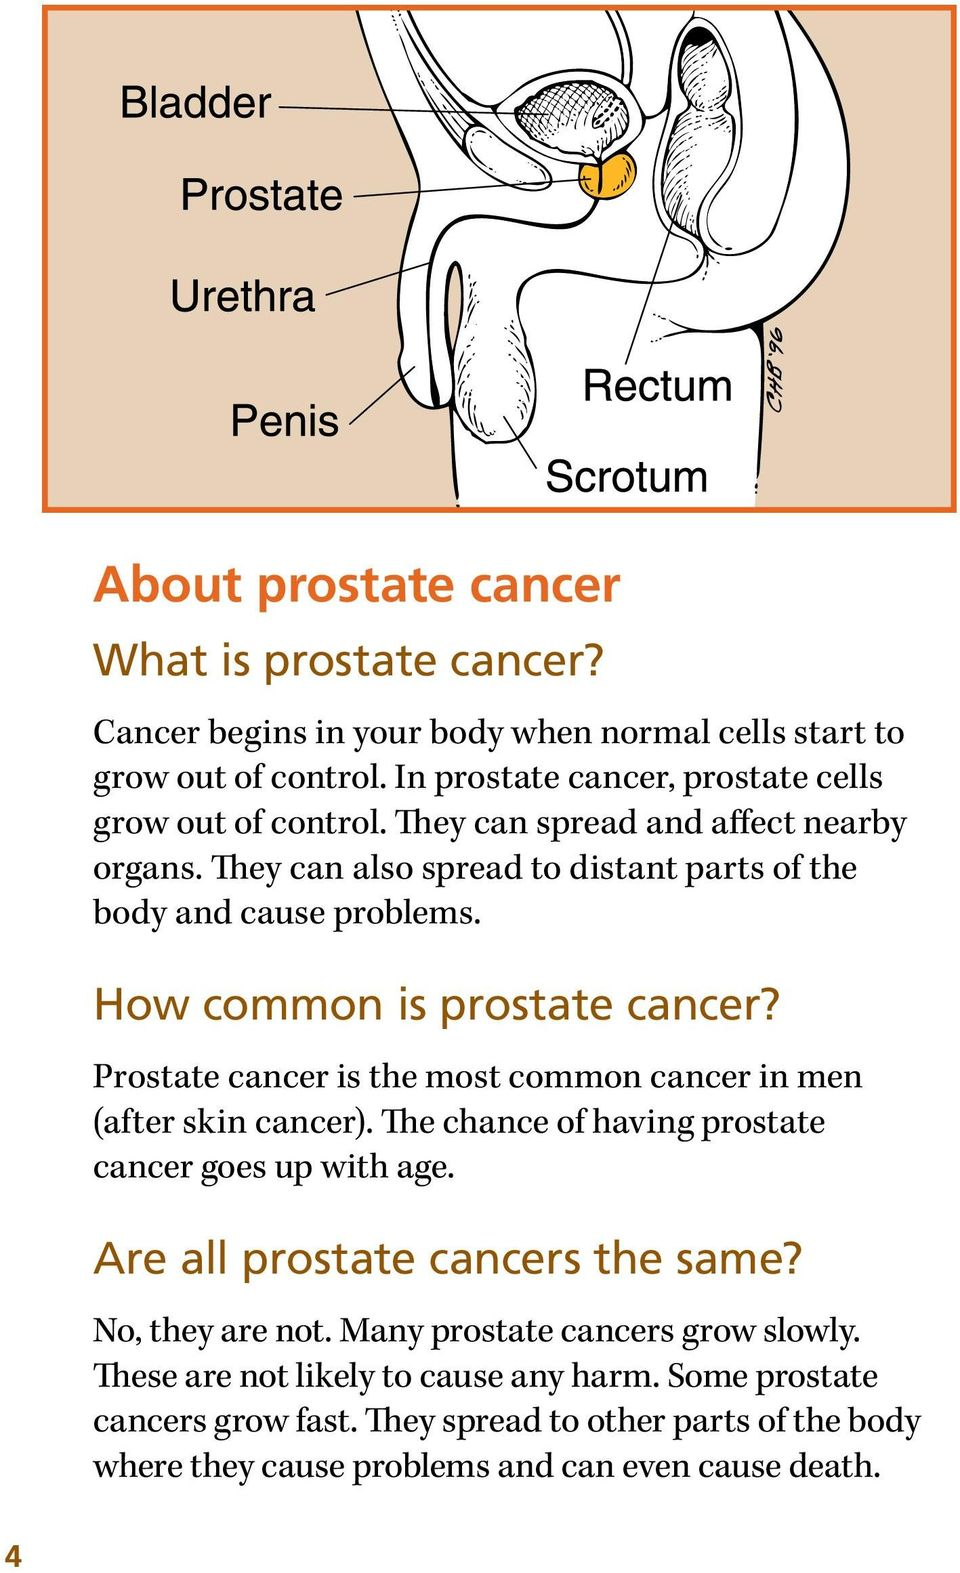 How common is prostate cancer? Prostate cancer is the most common cancer in men (after skin cancer). The chance of having prostate cancer goes up with age.